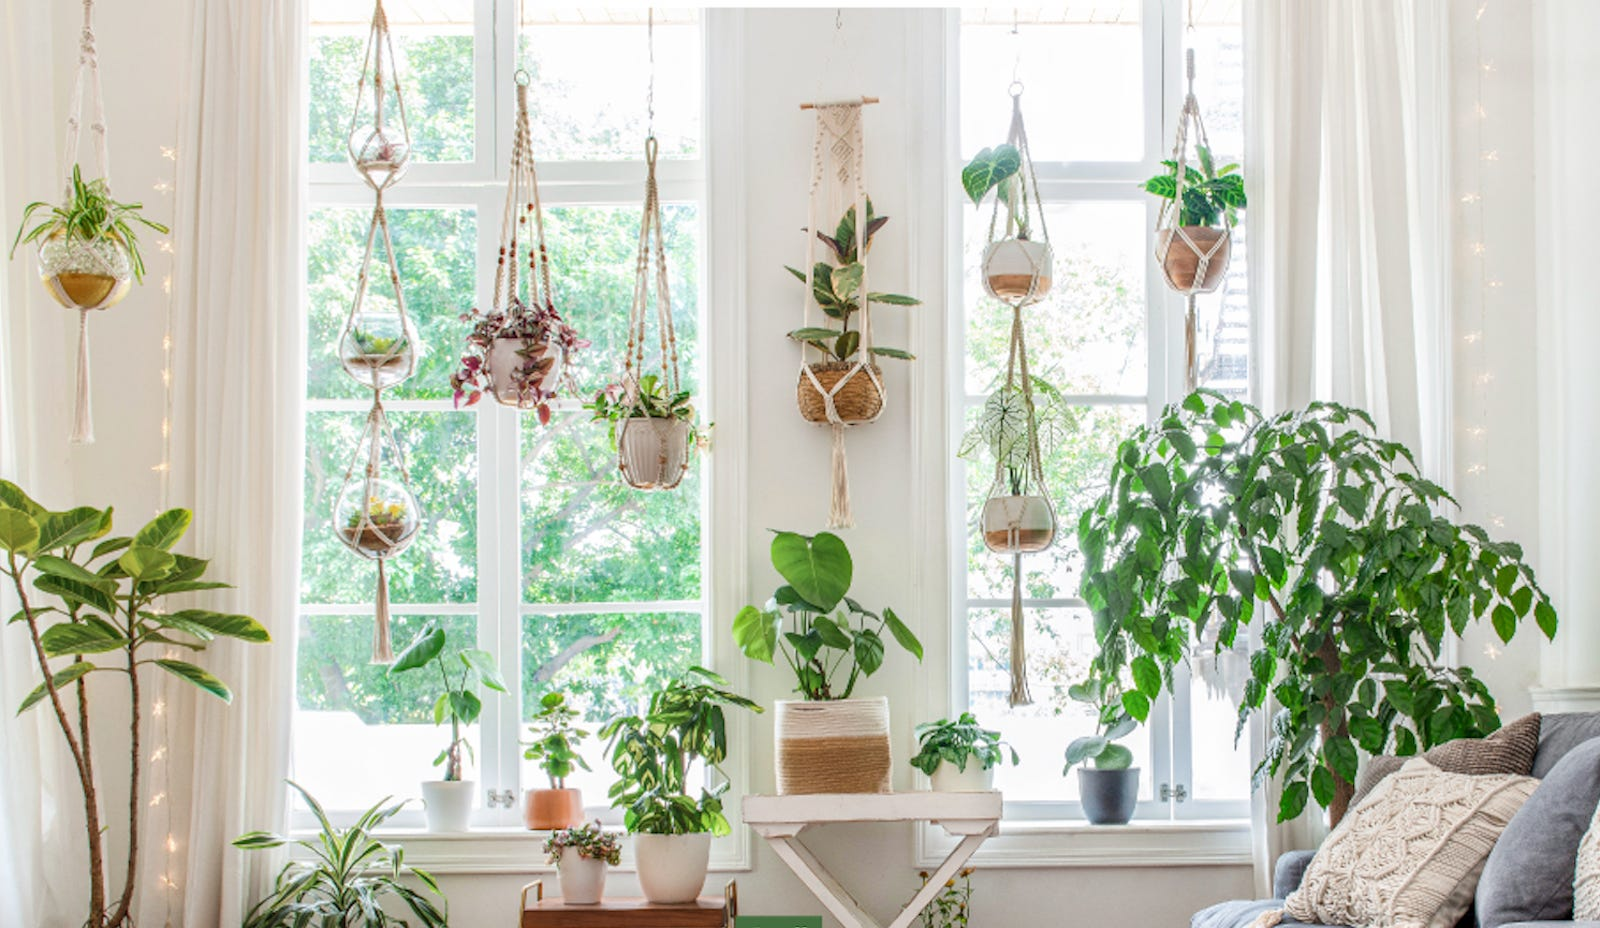 A living room window with several macrame hanging planters with plants in them